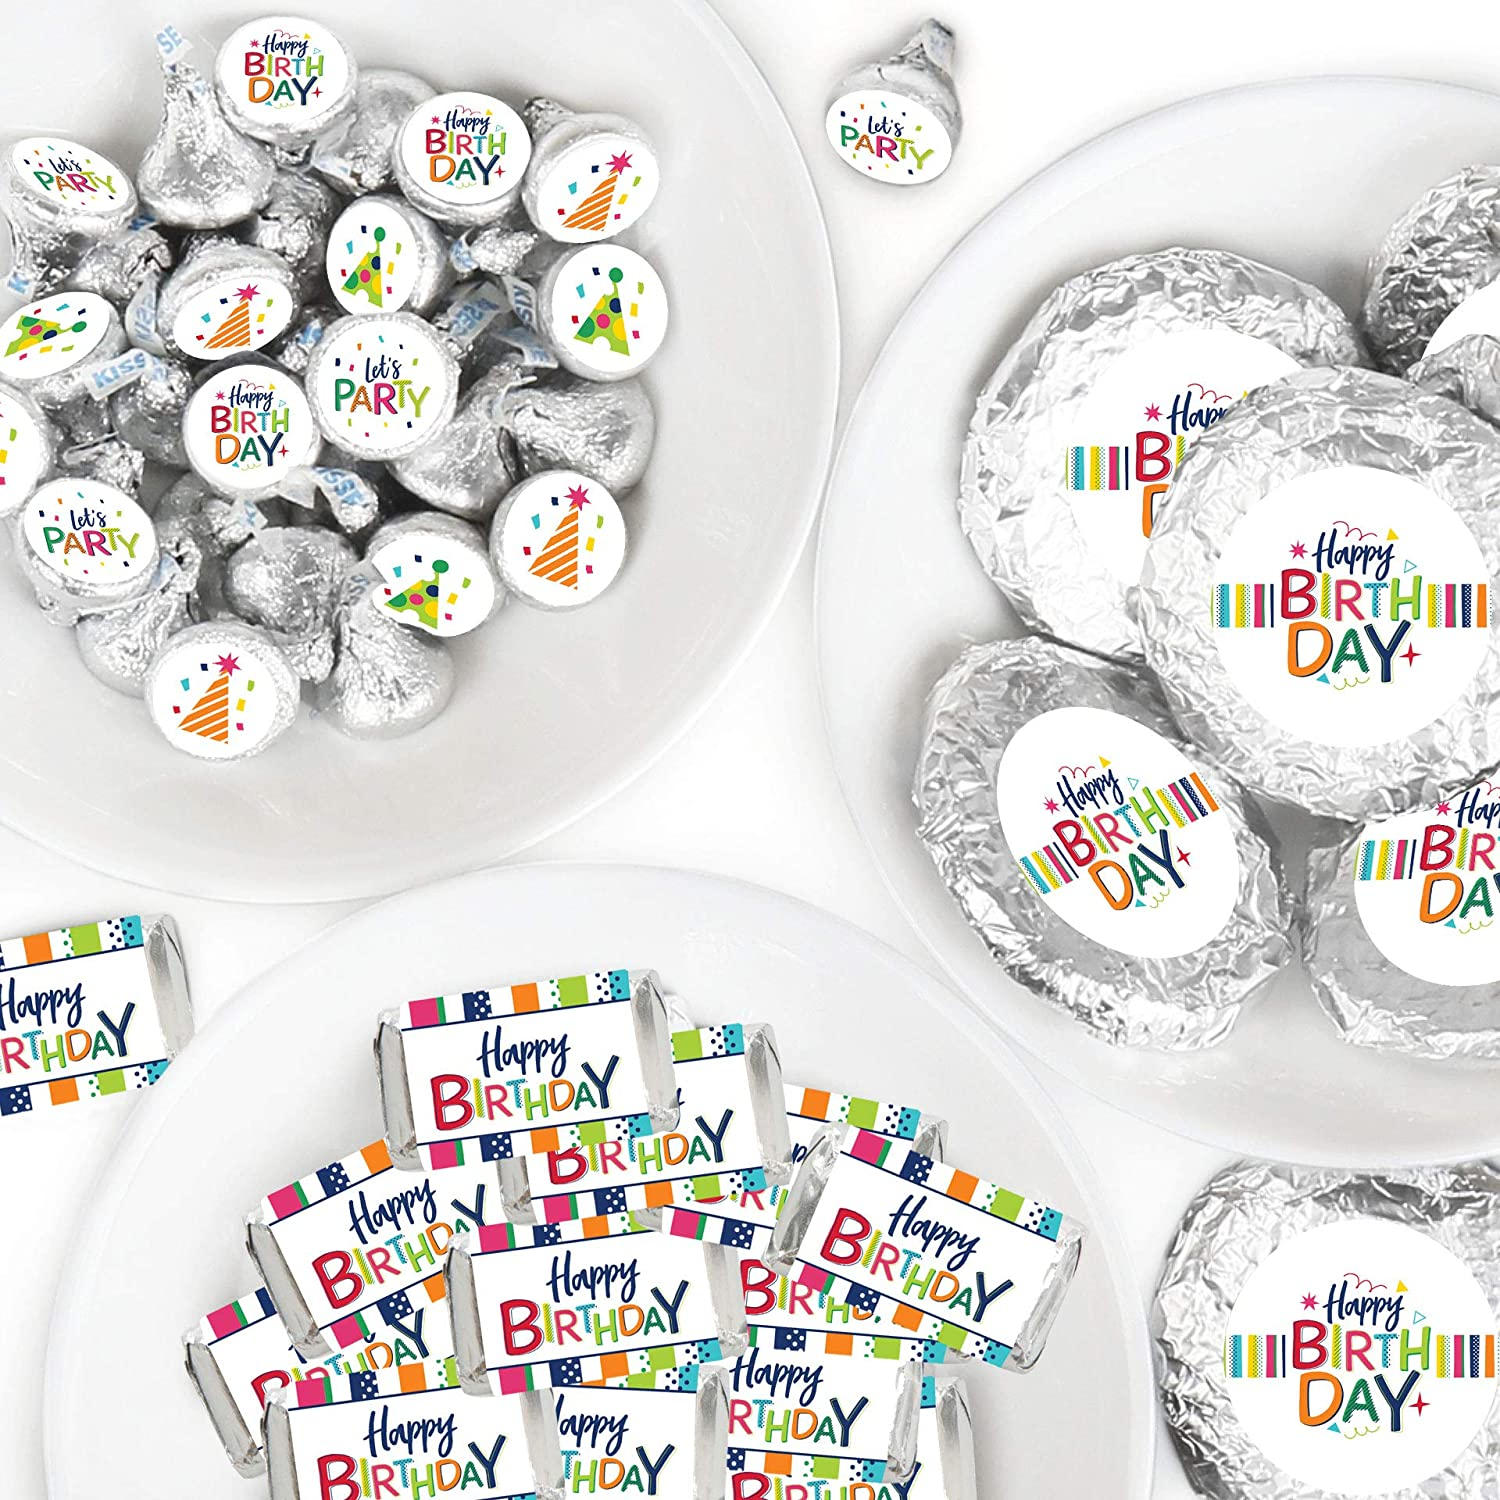 Big Dot of Happiness Cheerful Happy Birthday - Mini Candy Bar Wrappers, Round Candy Stickers and Circle Stickers - Colorful Birthday Party Candy Favor Sticker Kit - 304 Pieces